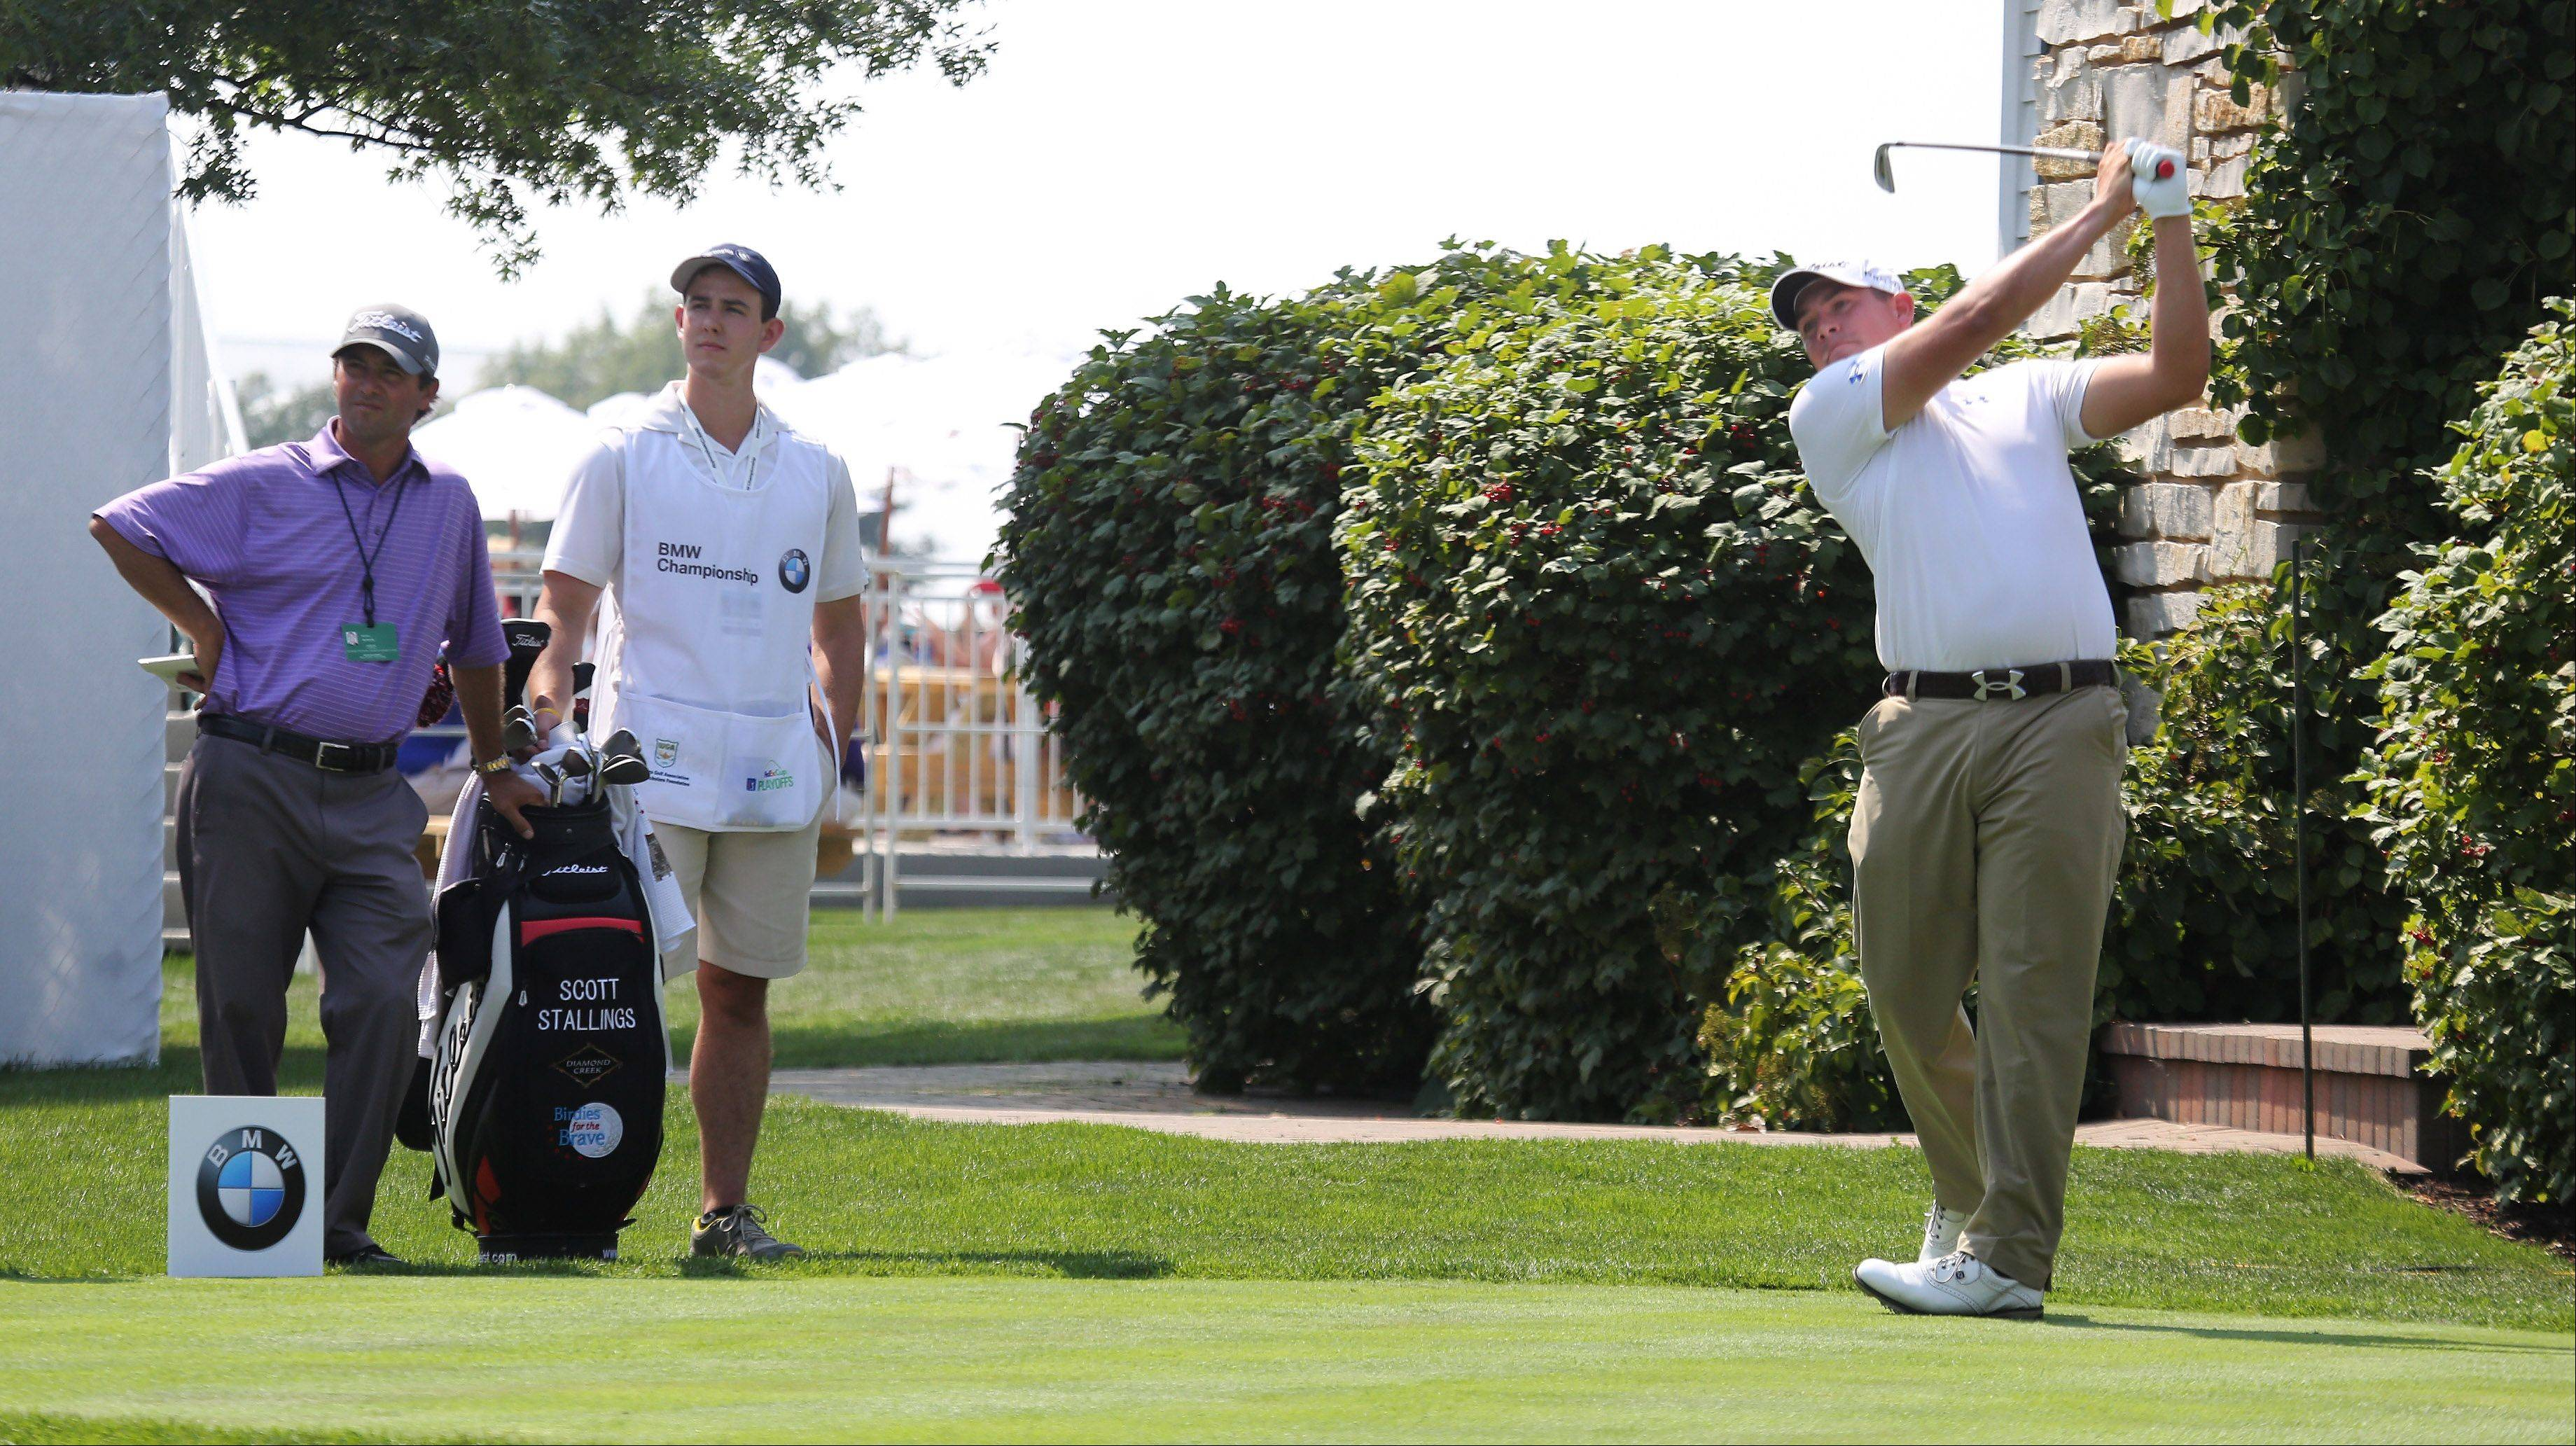 Professional golfer Scott Stallings tees off on the third hole Monday.